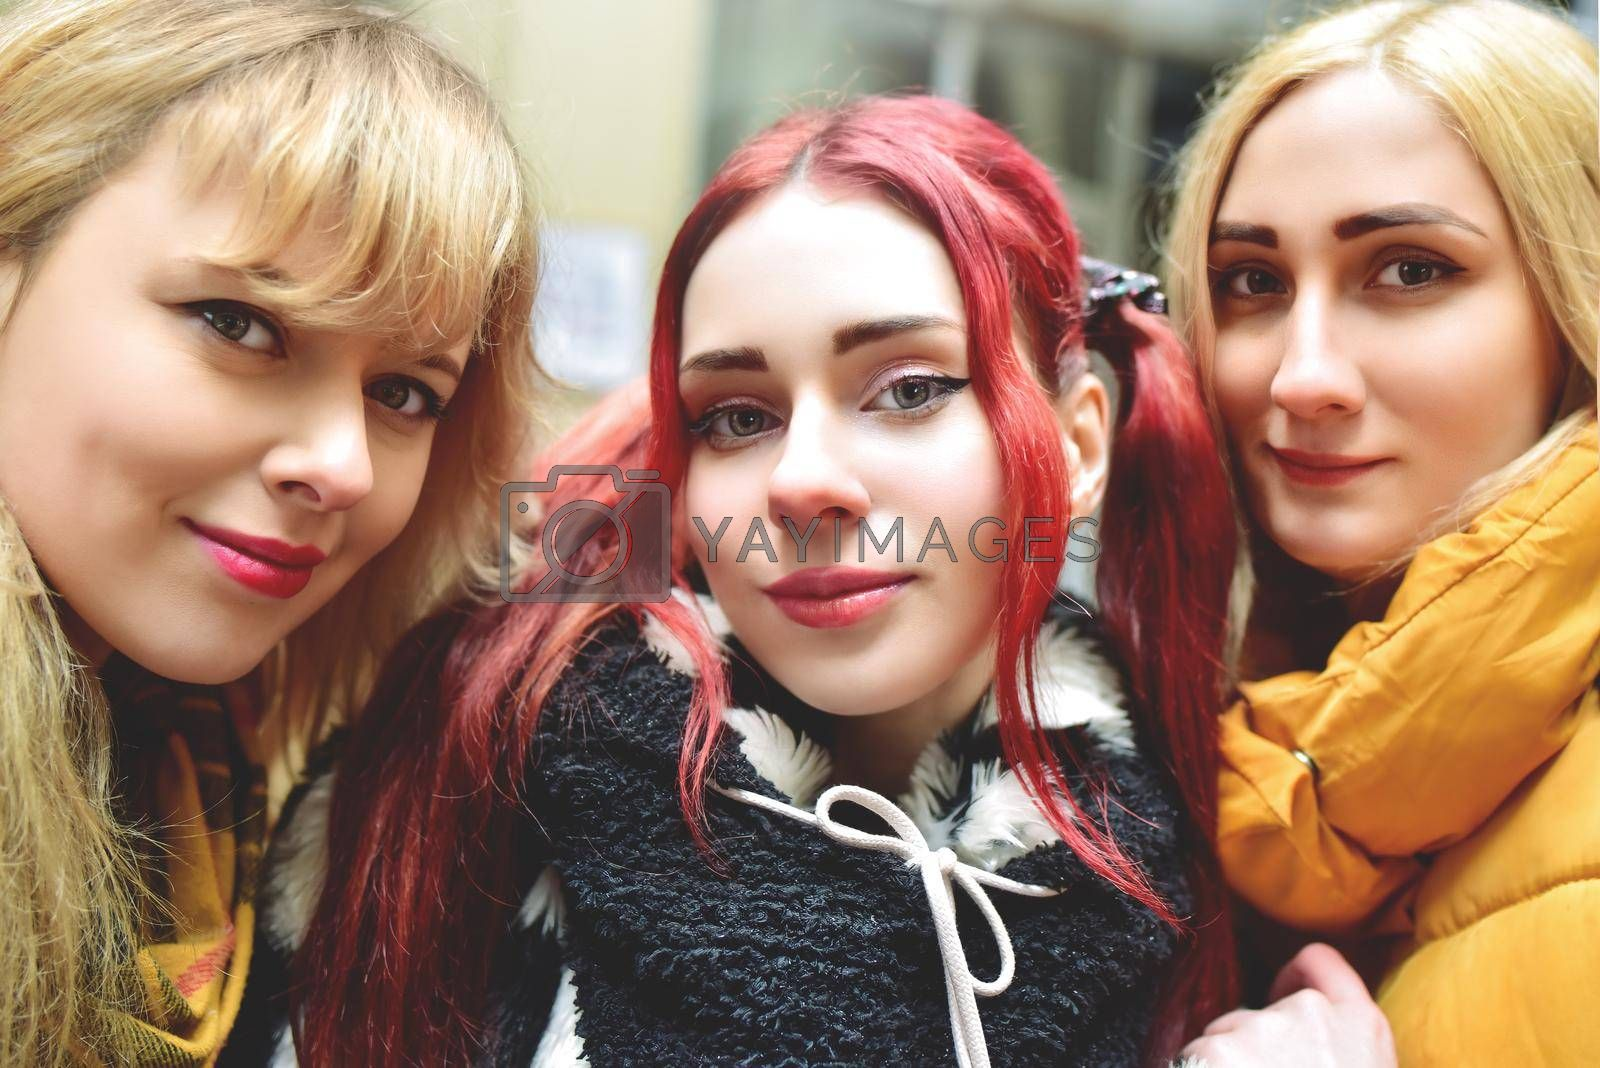 Three beautiful girlfriends in good spirits take a selfie in town. The concept of friendship